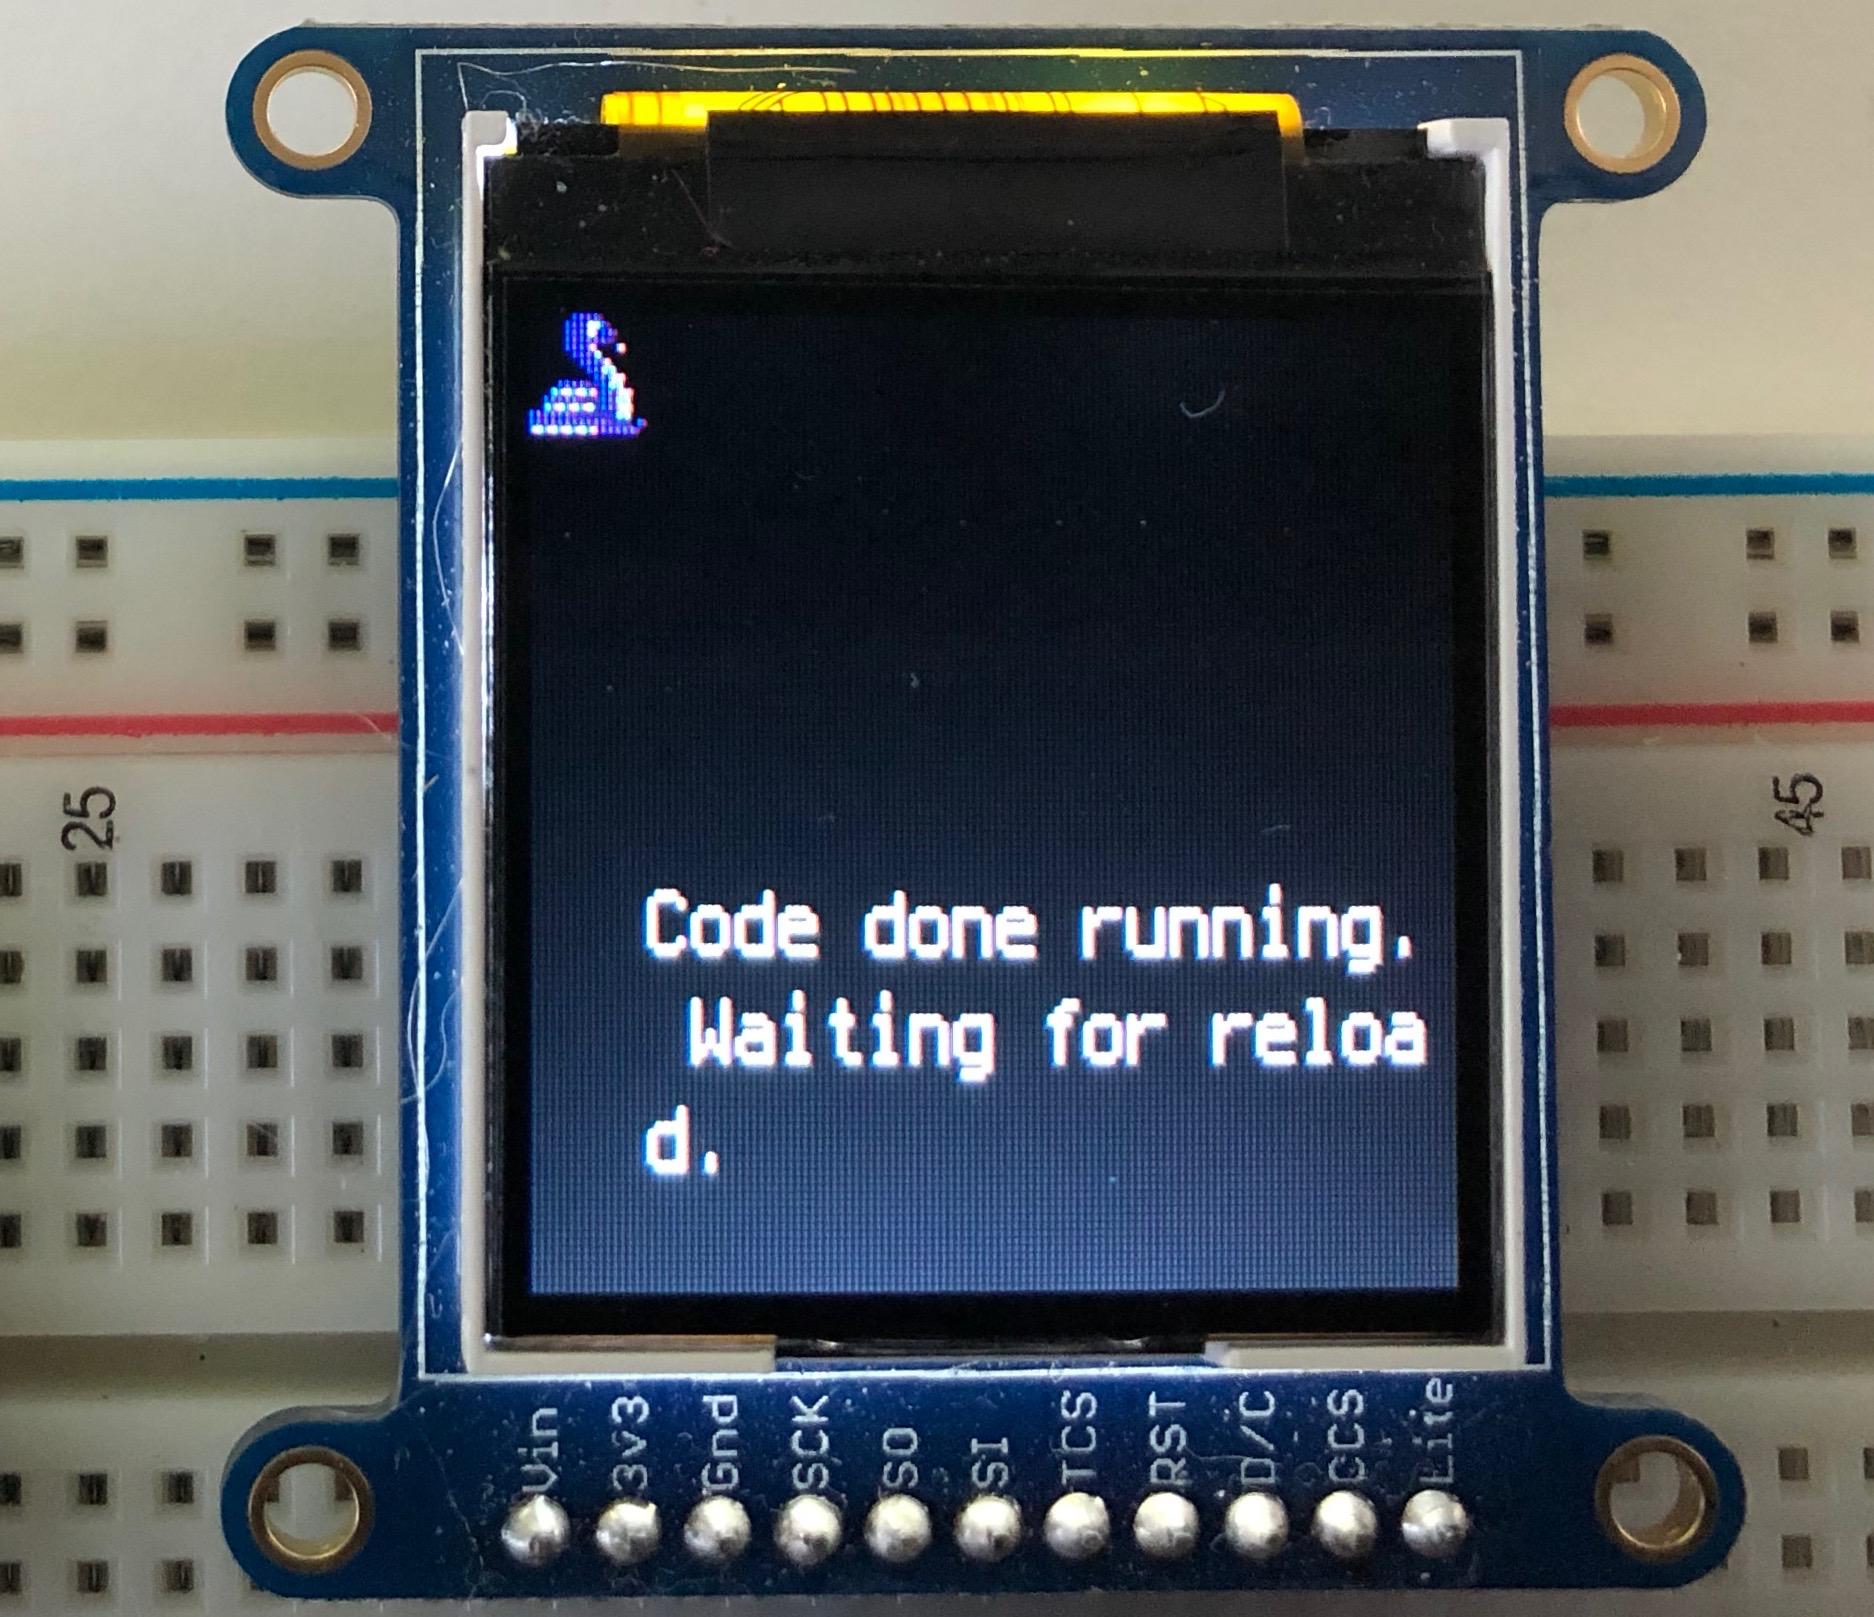 adafruit_products_1.44-text.jpg